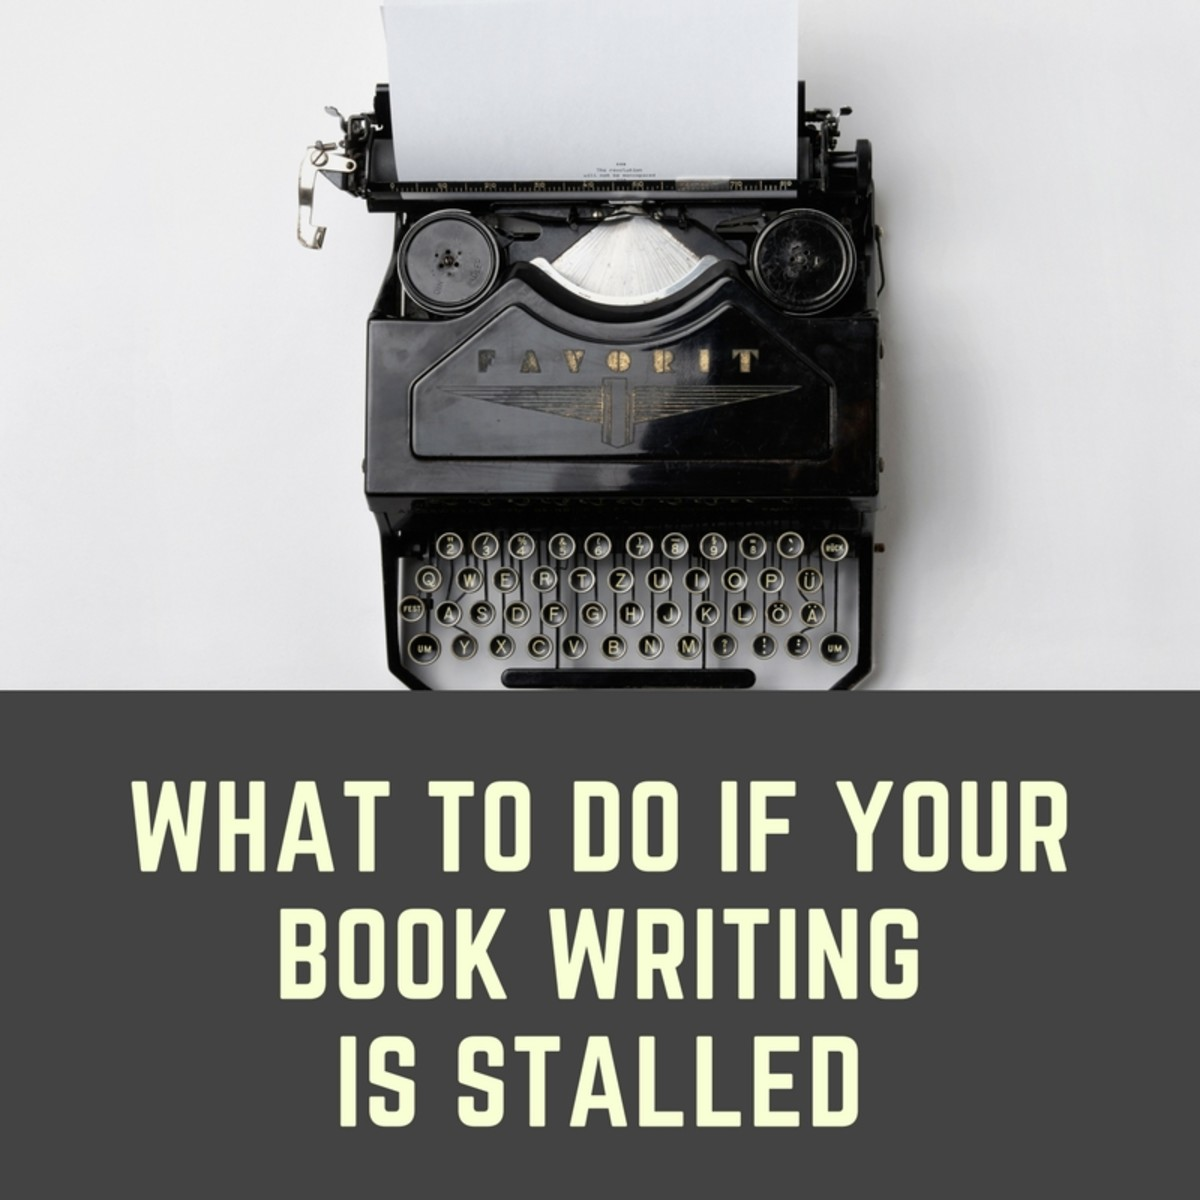 What to Do If Your Book Writing Is Stalled